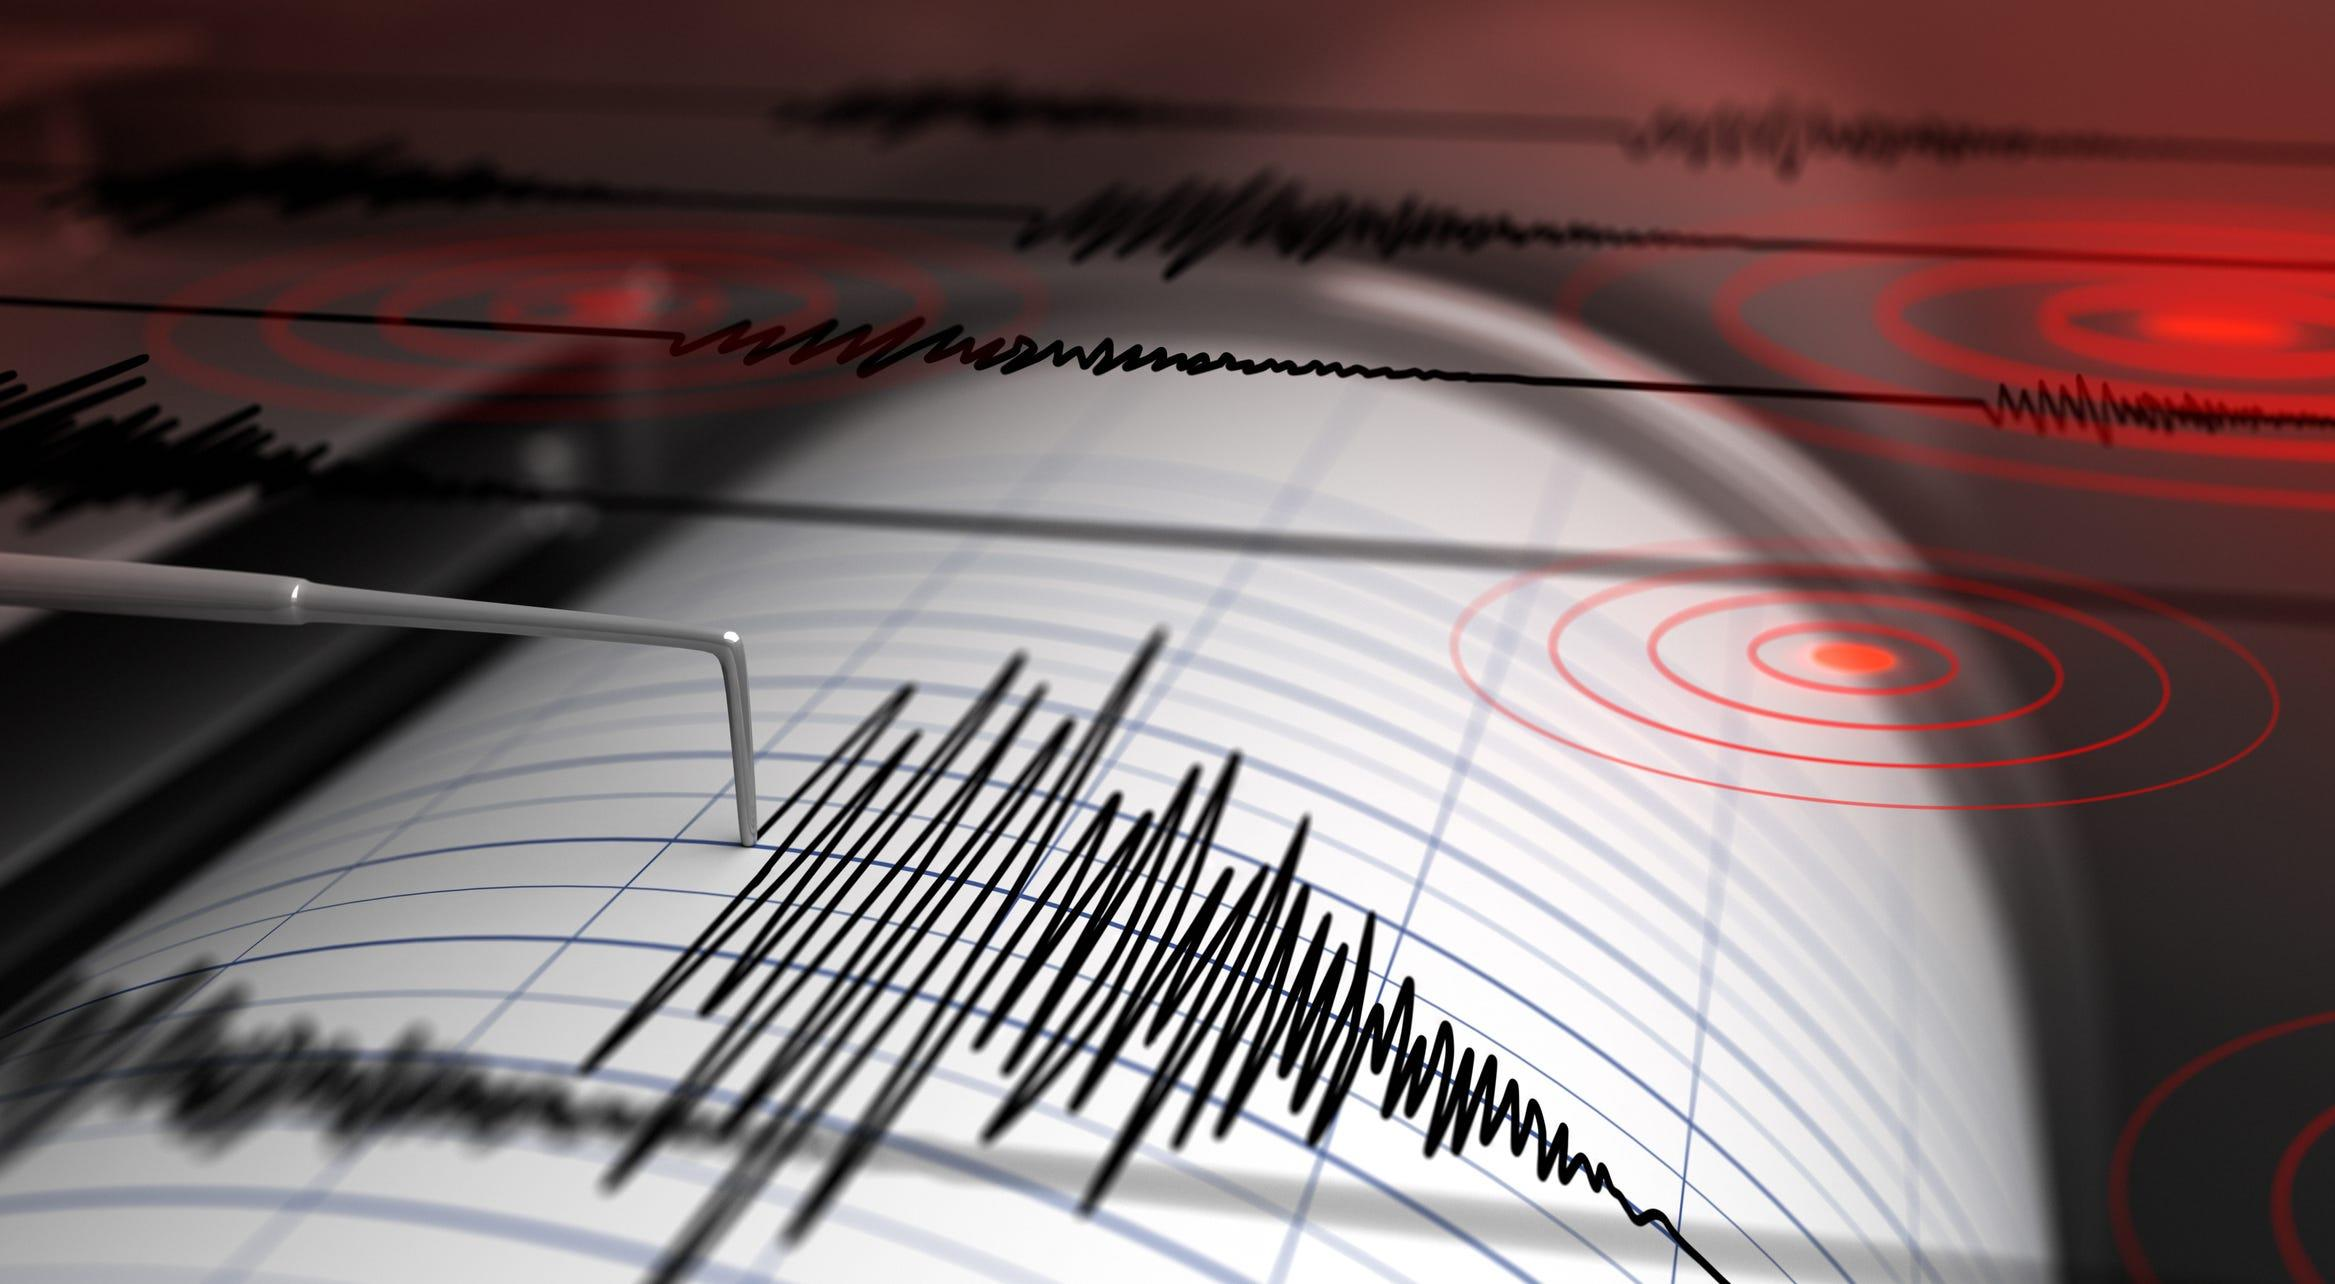 4.9-magnitude earthquake rocks parts of Southern California